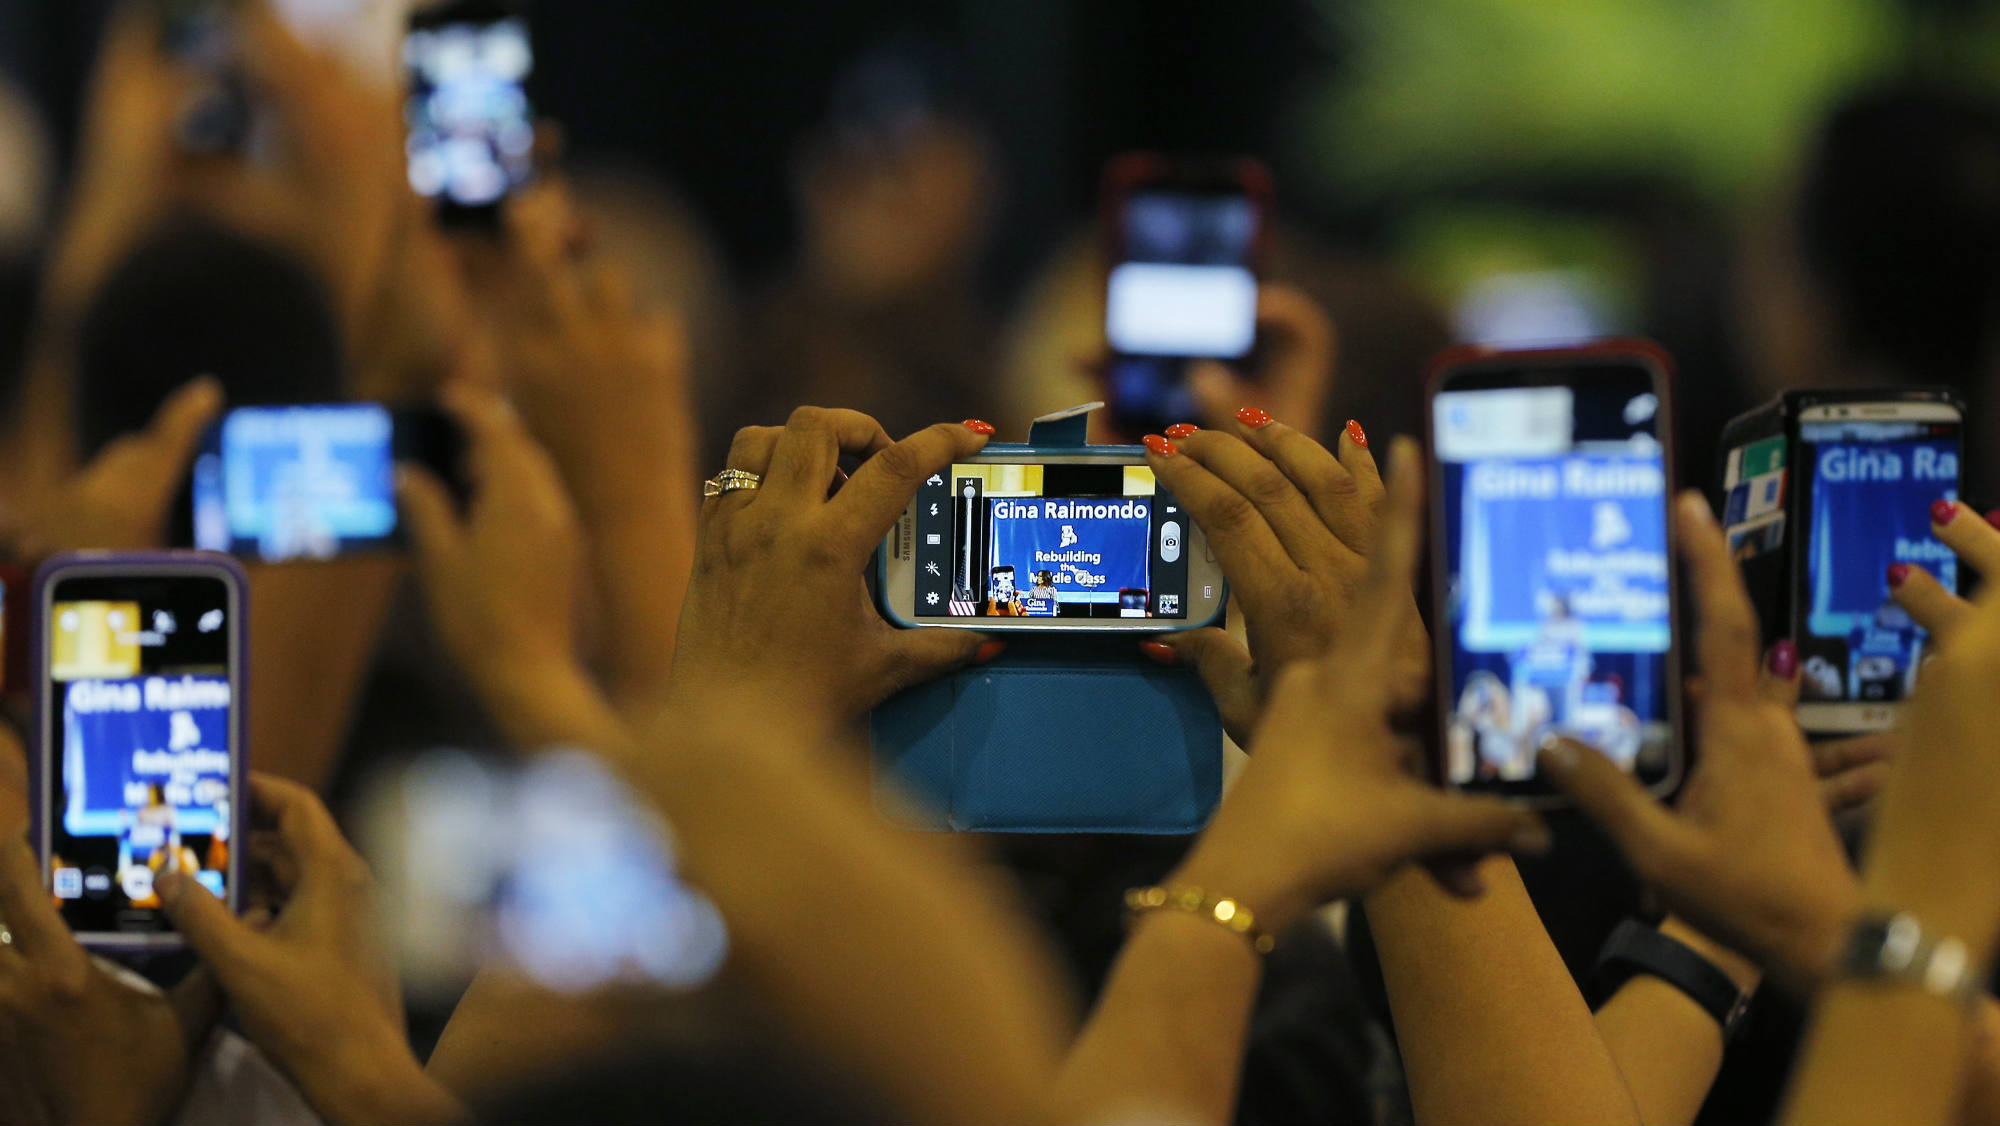 Audience members use their phones to record United States first lady Michelle Obama speaking at a campaign rally for Democratic candidate for Rhode Island Governor Gina Raimondo in Providence, Rhode Island October 30, 2014. REUTERS/Brian Snyder (UNITED STATES - Tags: POLITICS ELECTIONS)